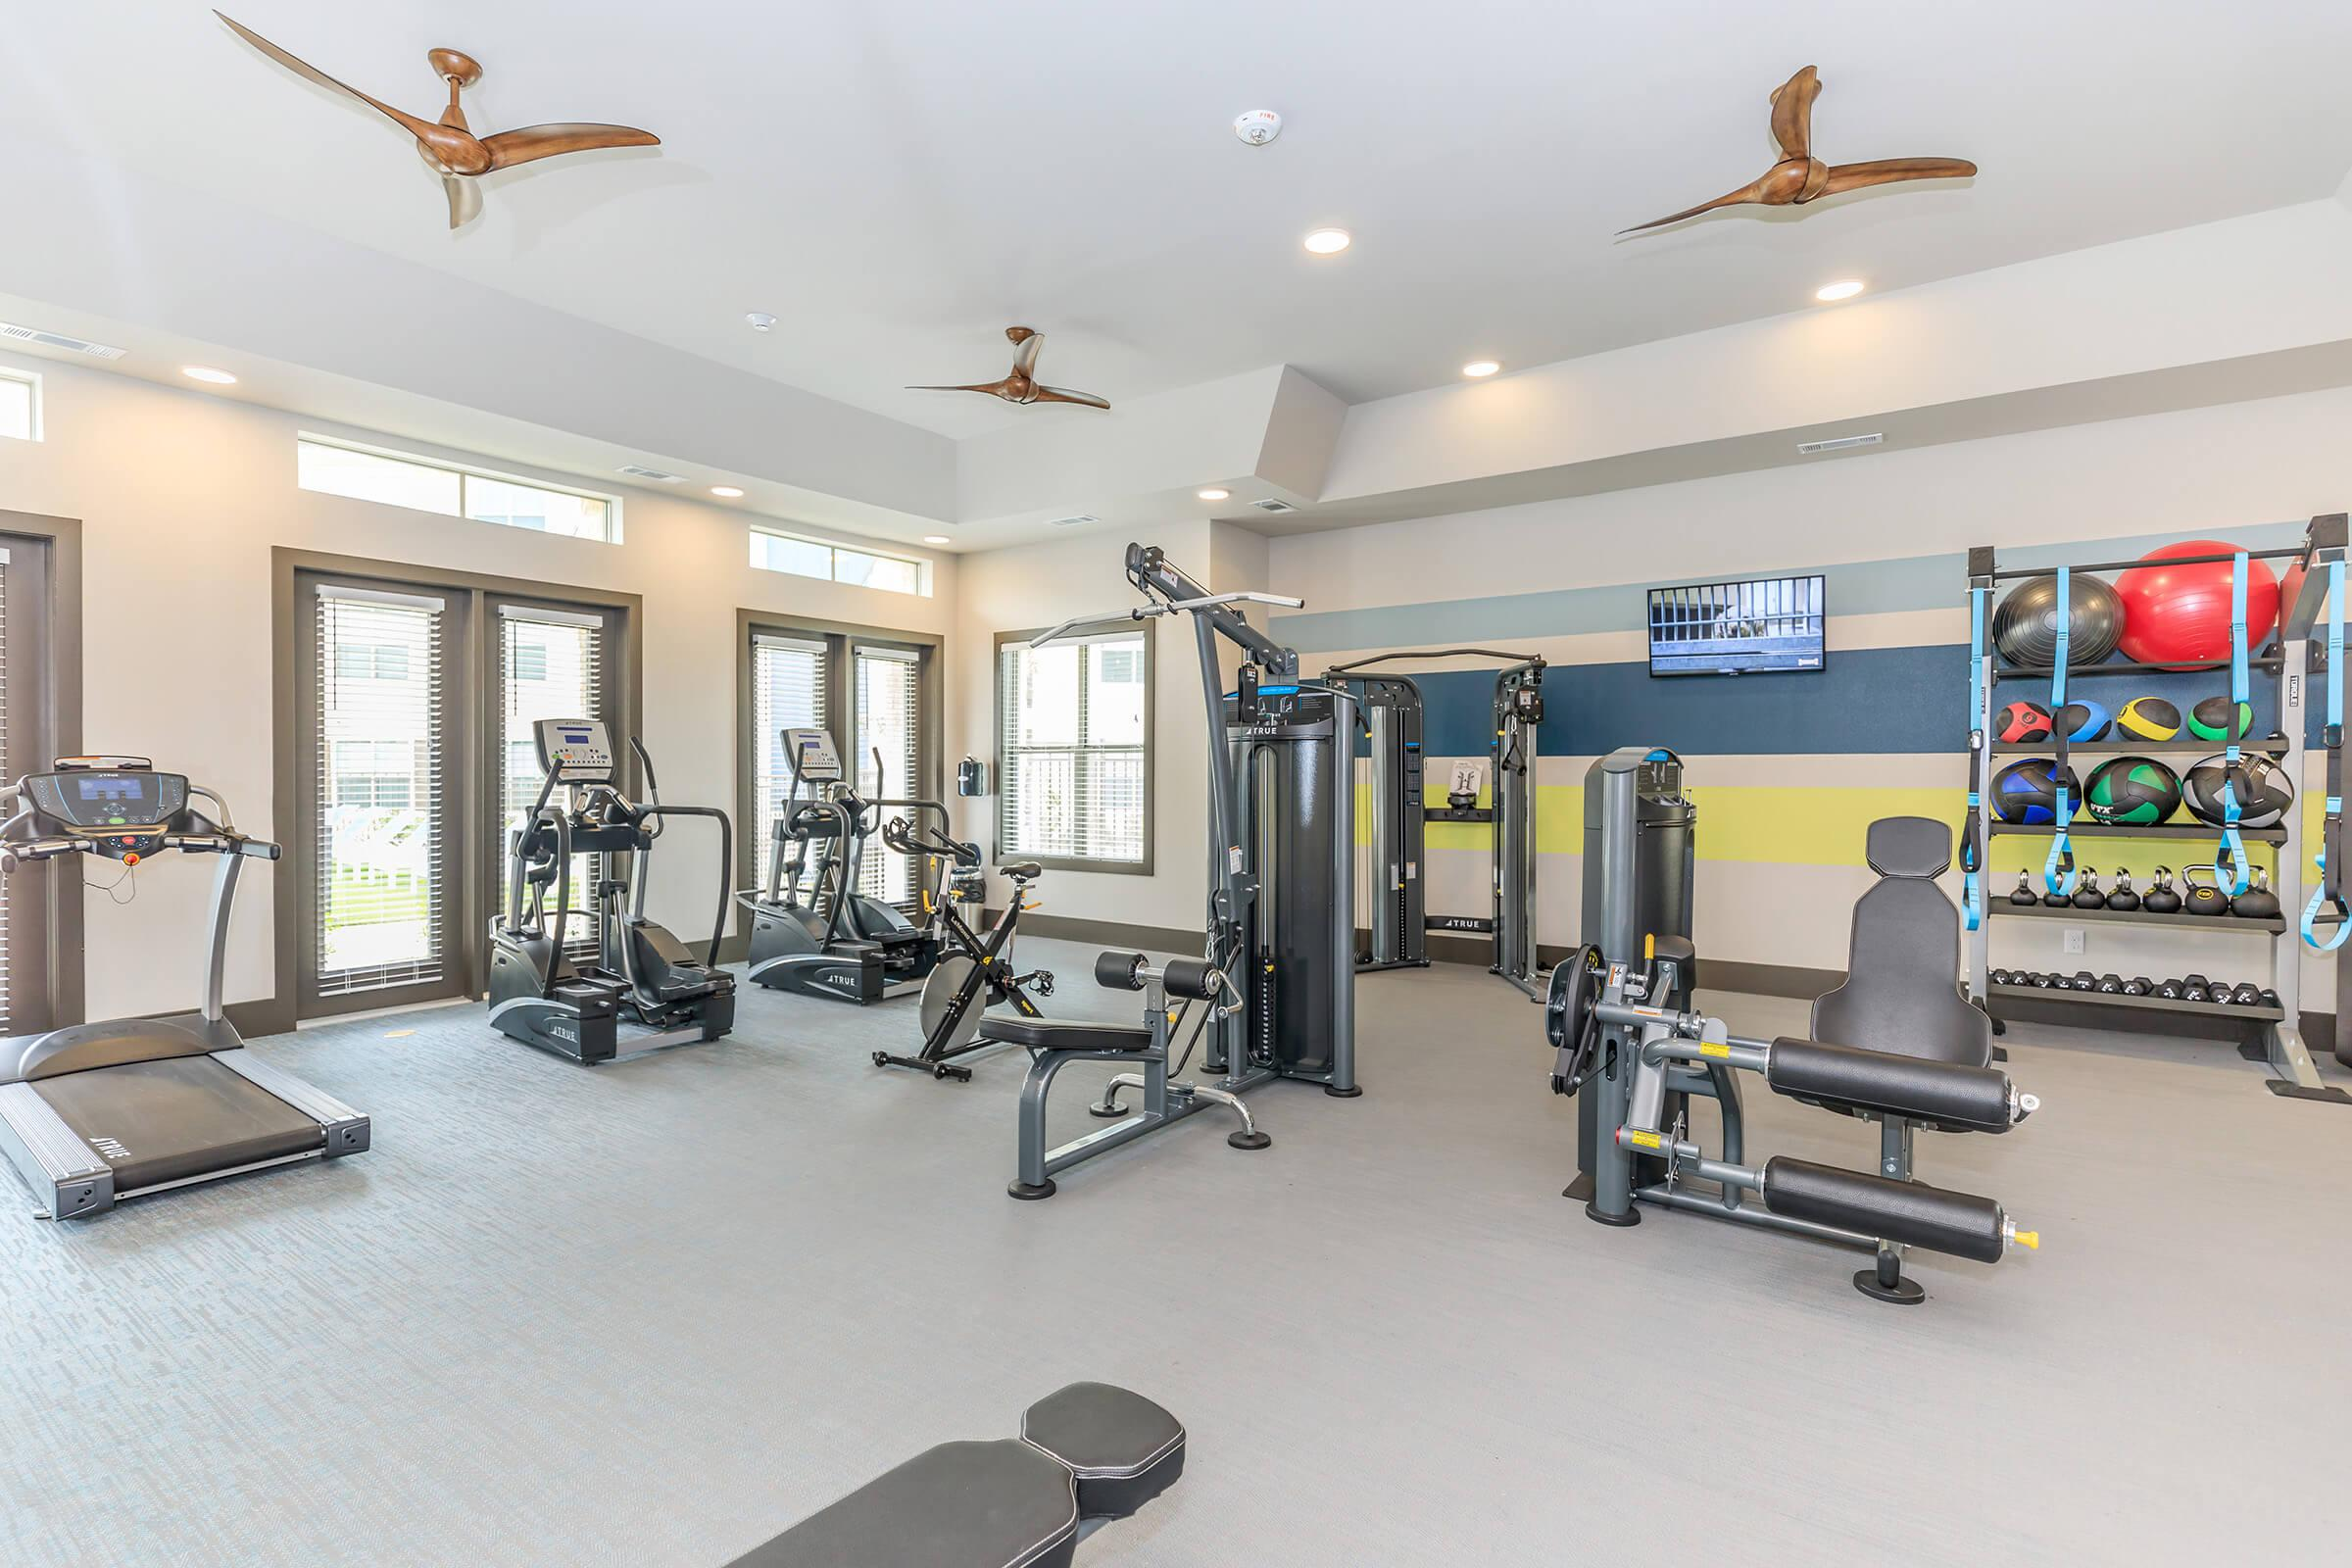 SPACIOUS FULLY-EQUIPPED FITNESS CENTER